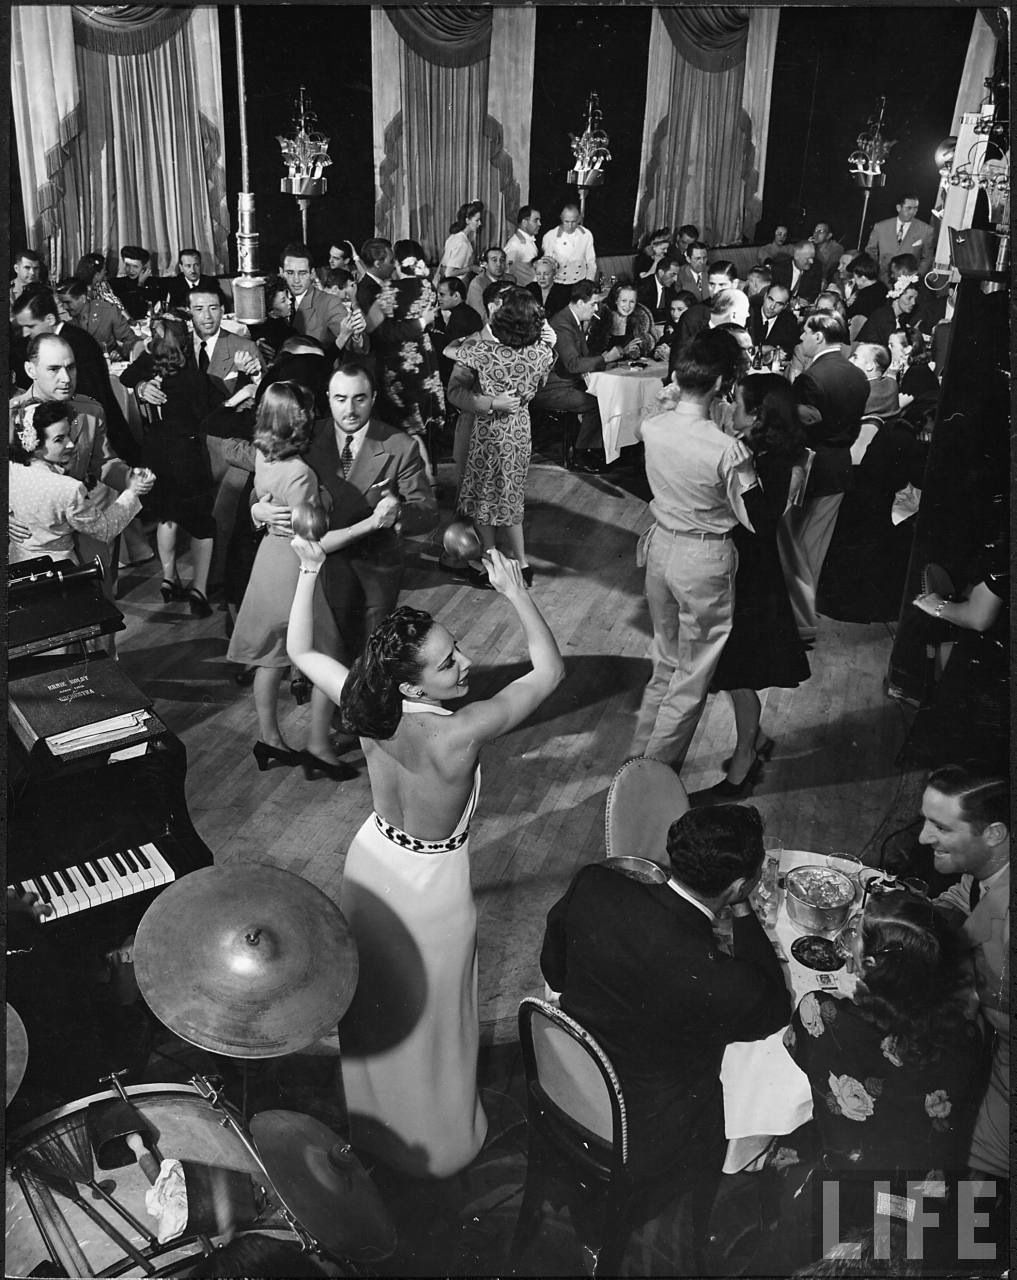 New York dance club in the 50s (With images) Night club